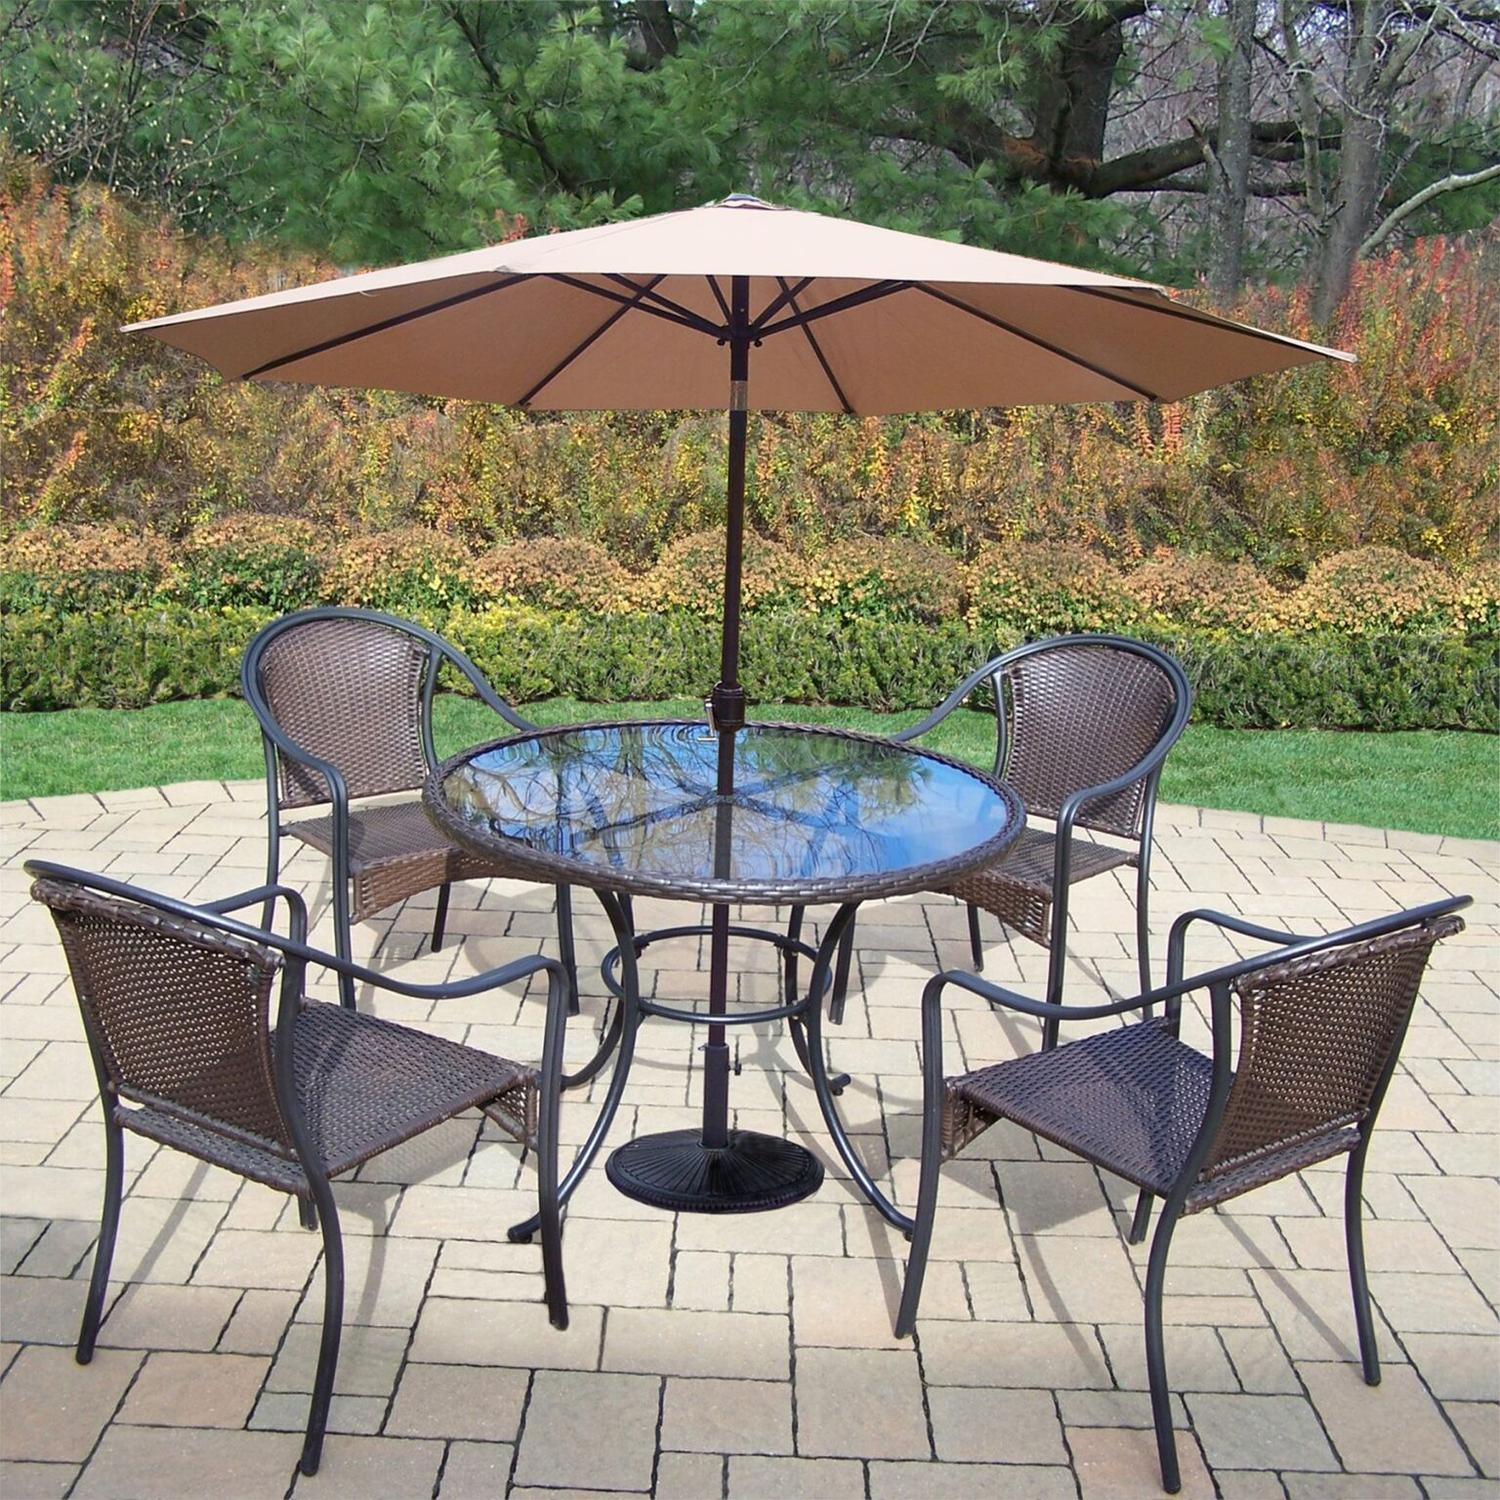 7-Piece Coffee Tuscany All-Weather Resin Wicker Dining Set w/ Tan Umbrella & Weight